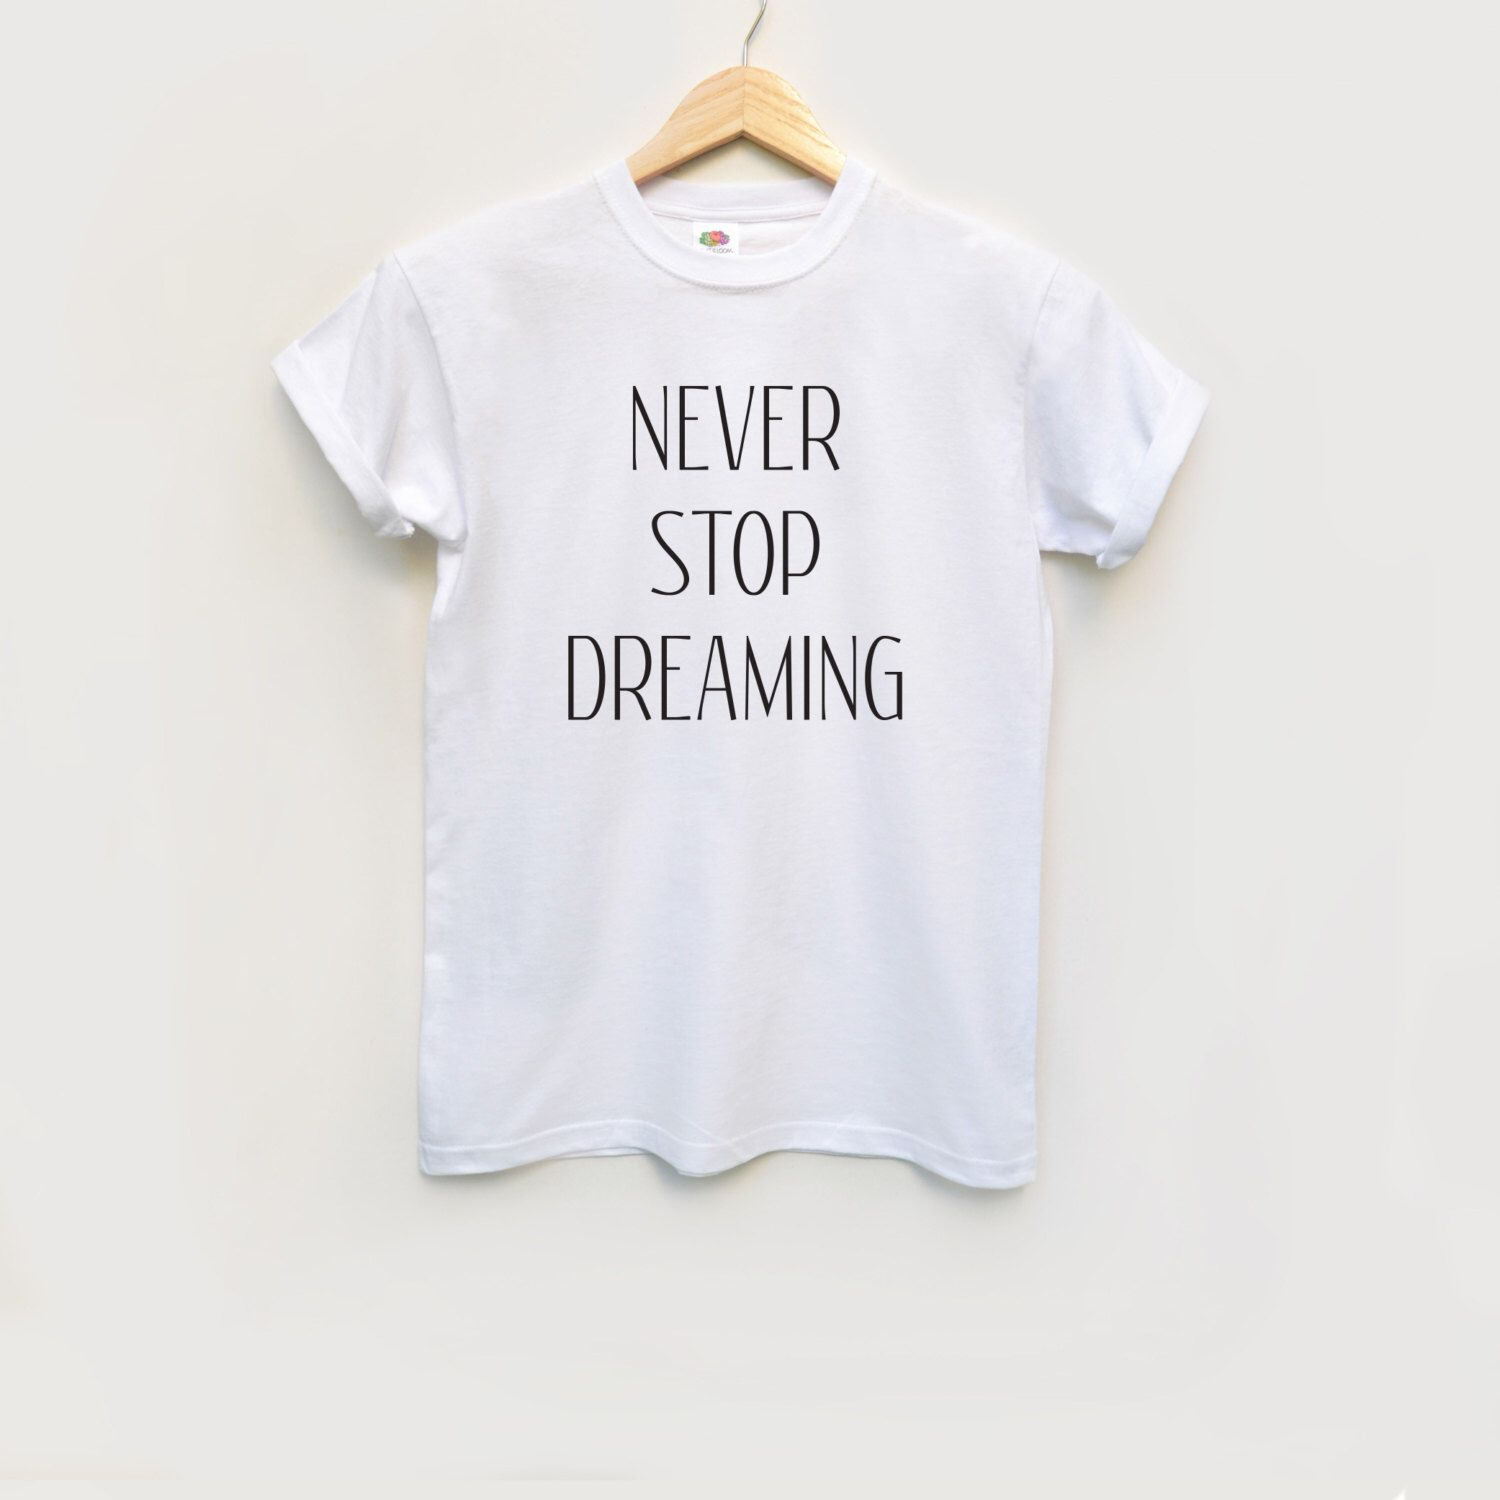 Never stop dreaming white tee shirt / Quote t shirt / White tee / Sentence t shirt / Round neck tee-shirt by fawlapparel on Etsy https://www.etsy.com/listing/483097419/never-stop-dreaming-white-tee-shirt